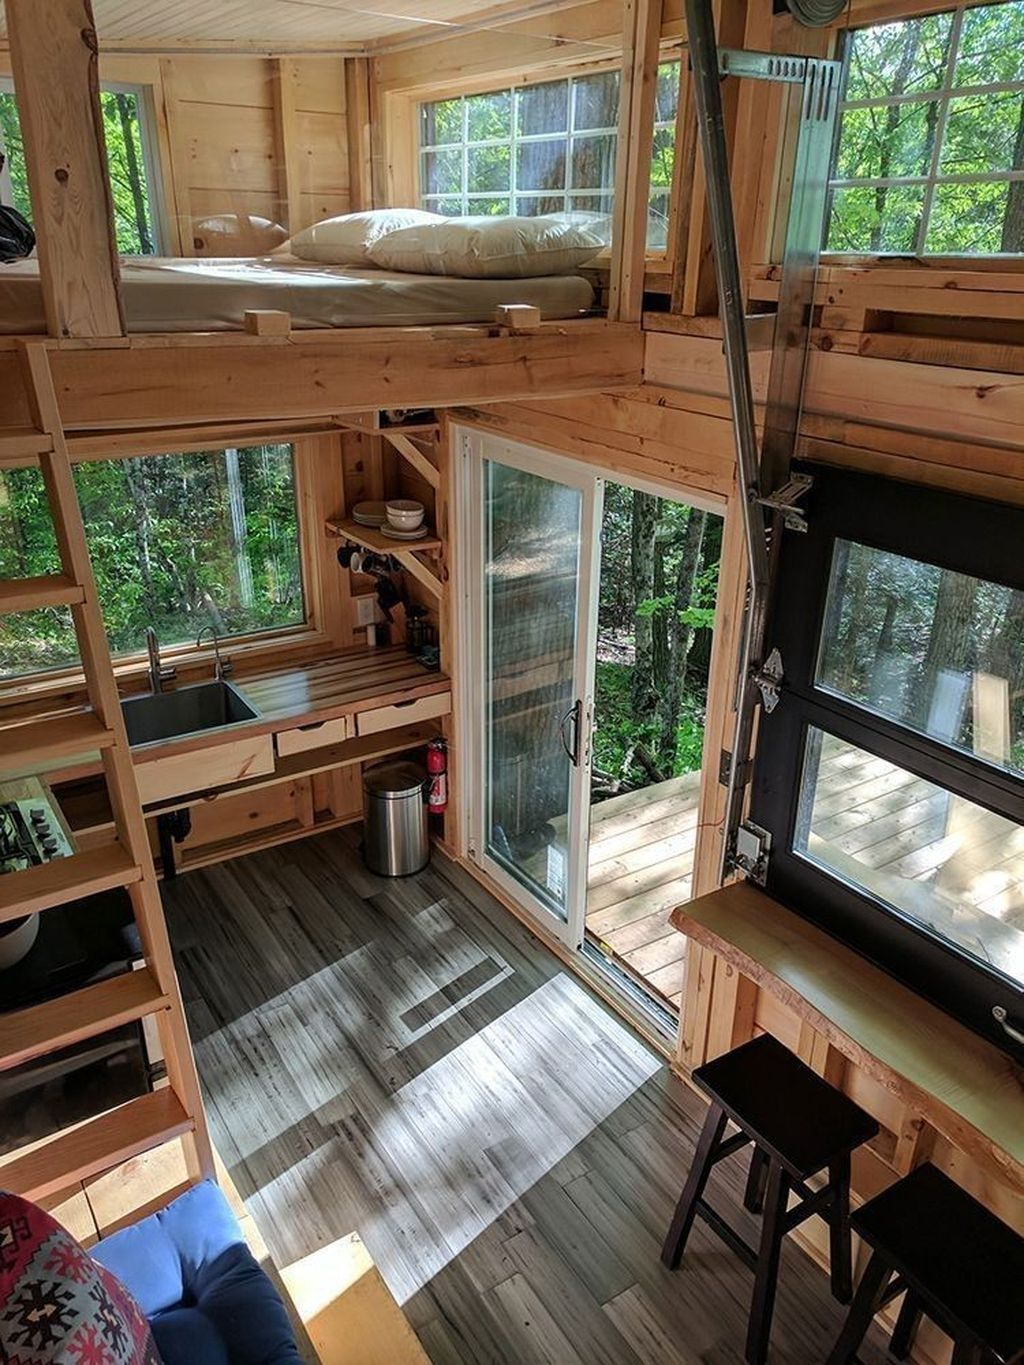 39 Beautiful Tiny House Design Ideas To Inspire You Today Tiny House Interior Design Tree House Interior Tree House Designs